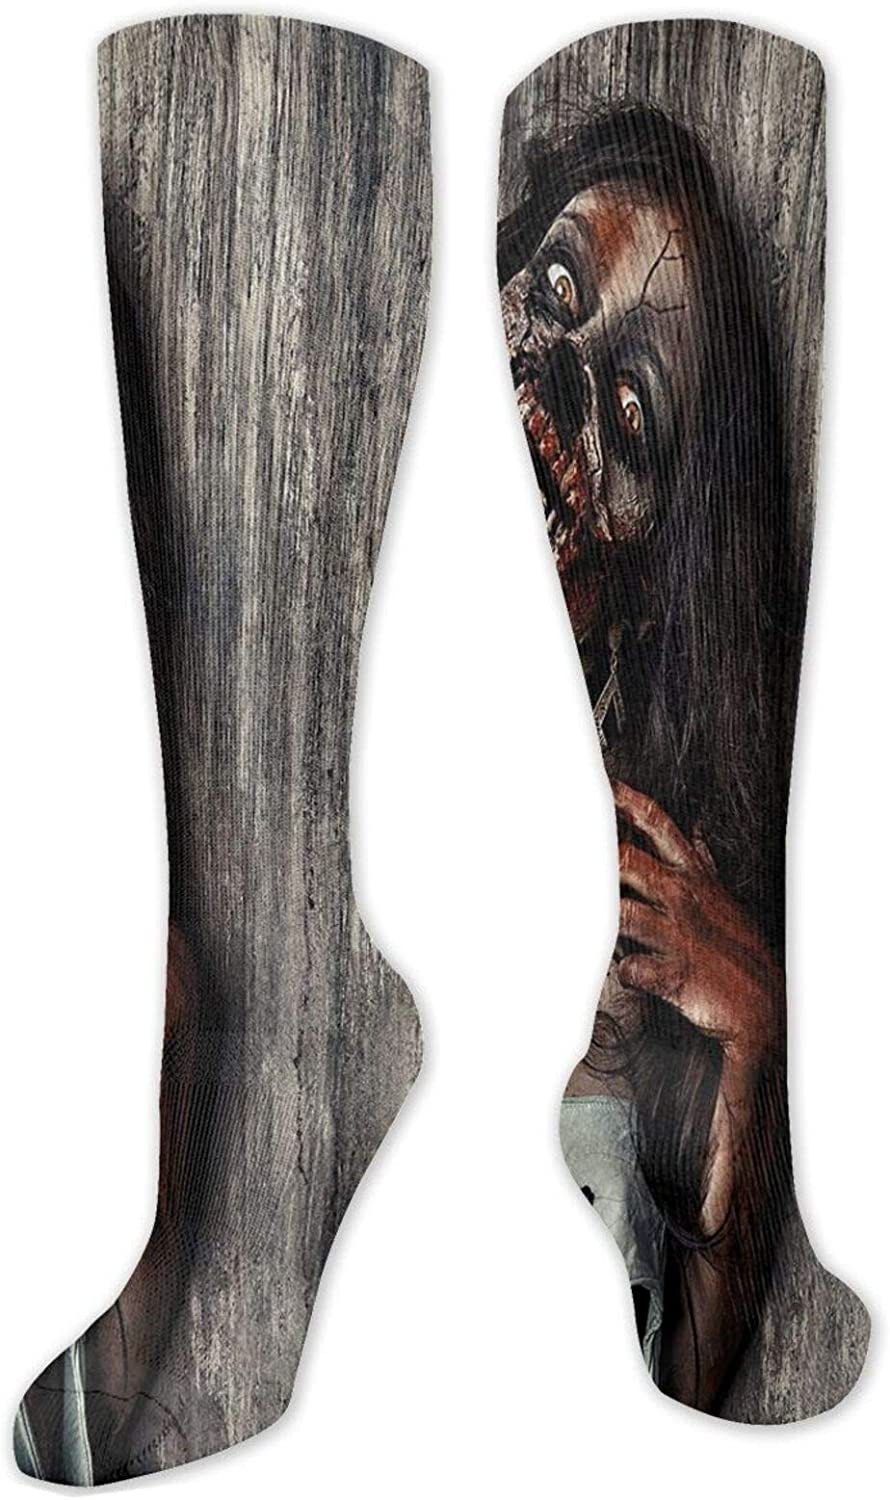 Compression High Socks Angry Brand new Genuine Free Shipping Dead Woman Sacrifice Mystic Fantasy